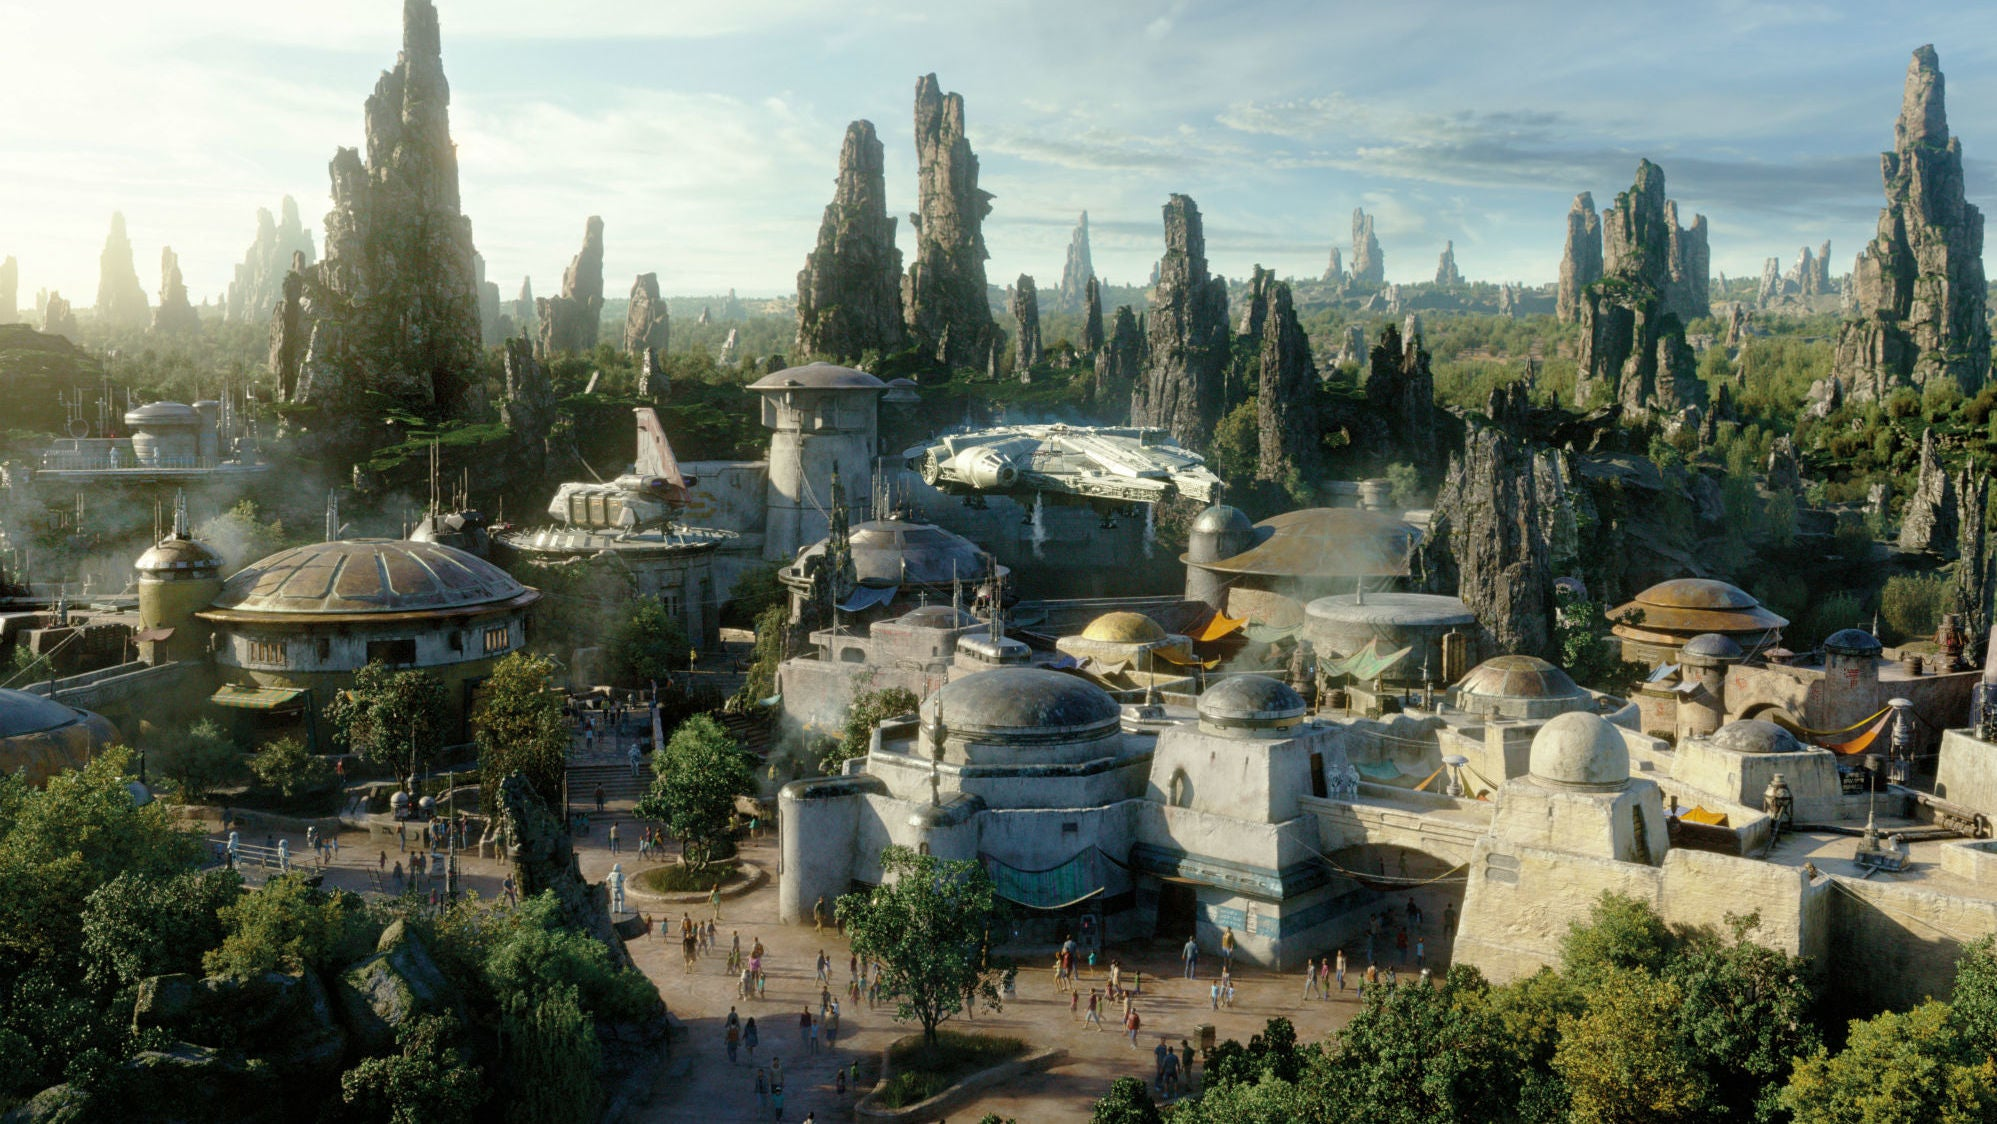 Star Wars: Galaxy's Edge Has Its Opening Dates, With Some Fine Print